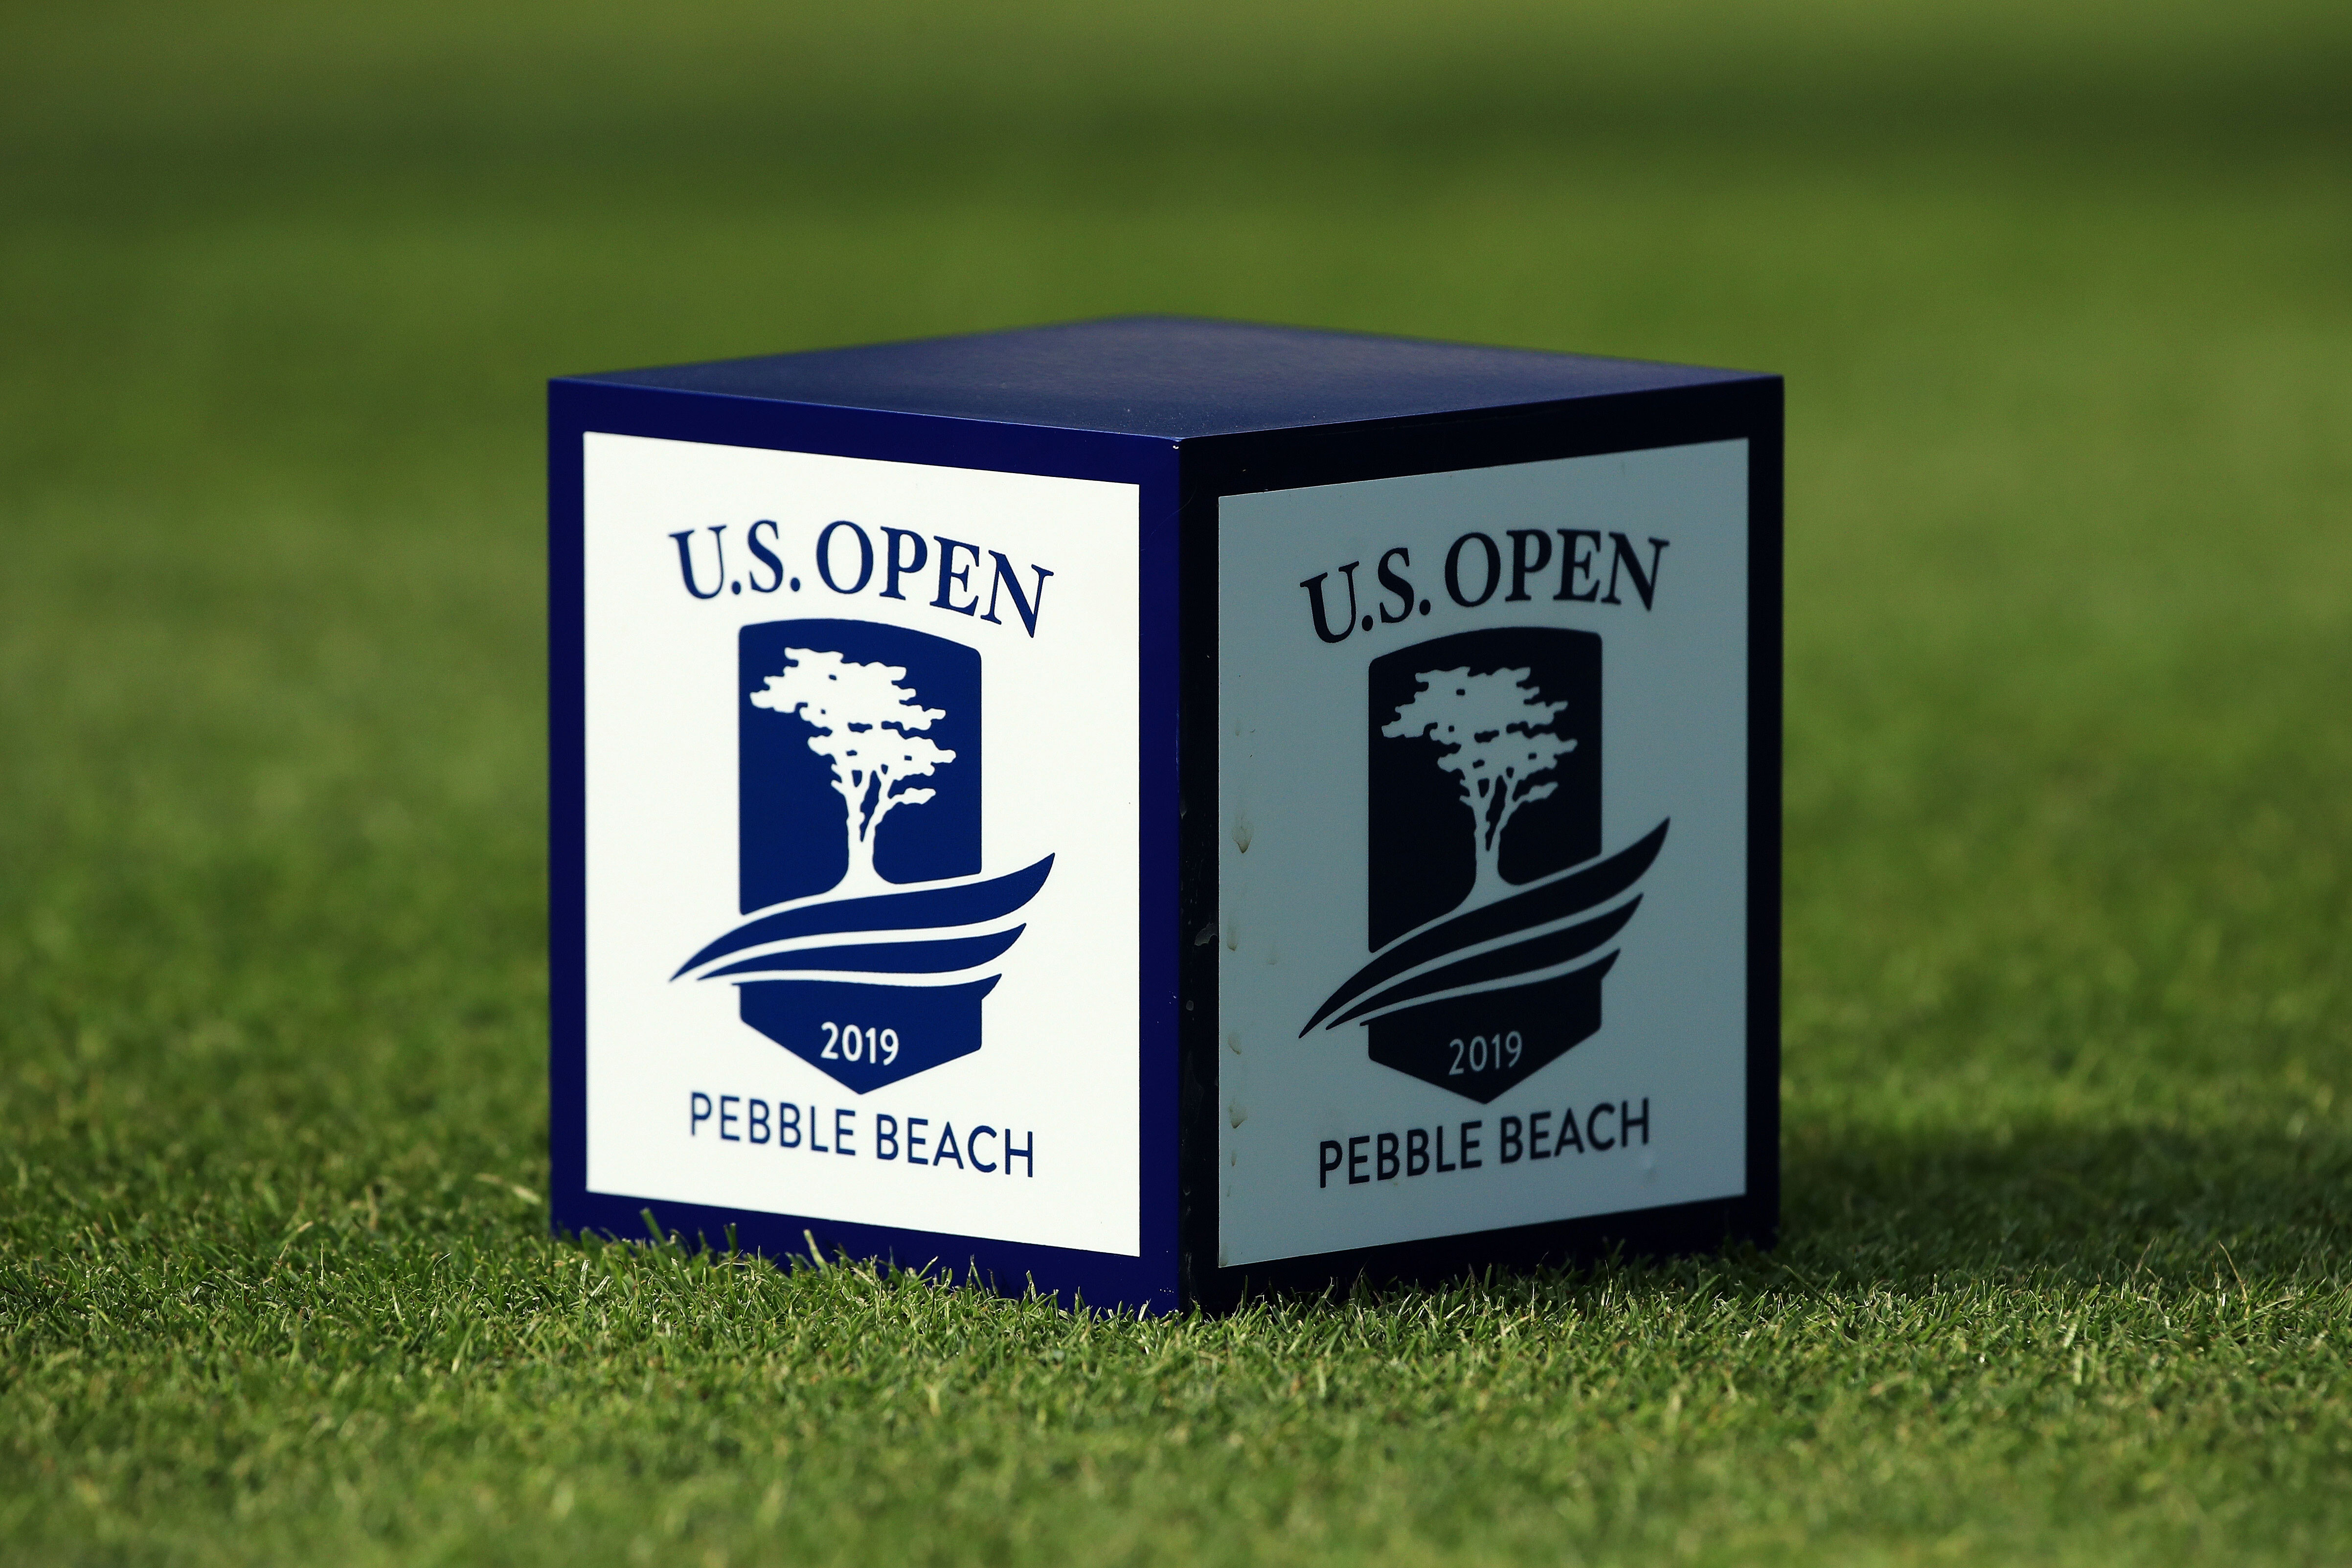 Man charged after allegedly stealing and reselling more than 23,000 US Open tickets